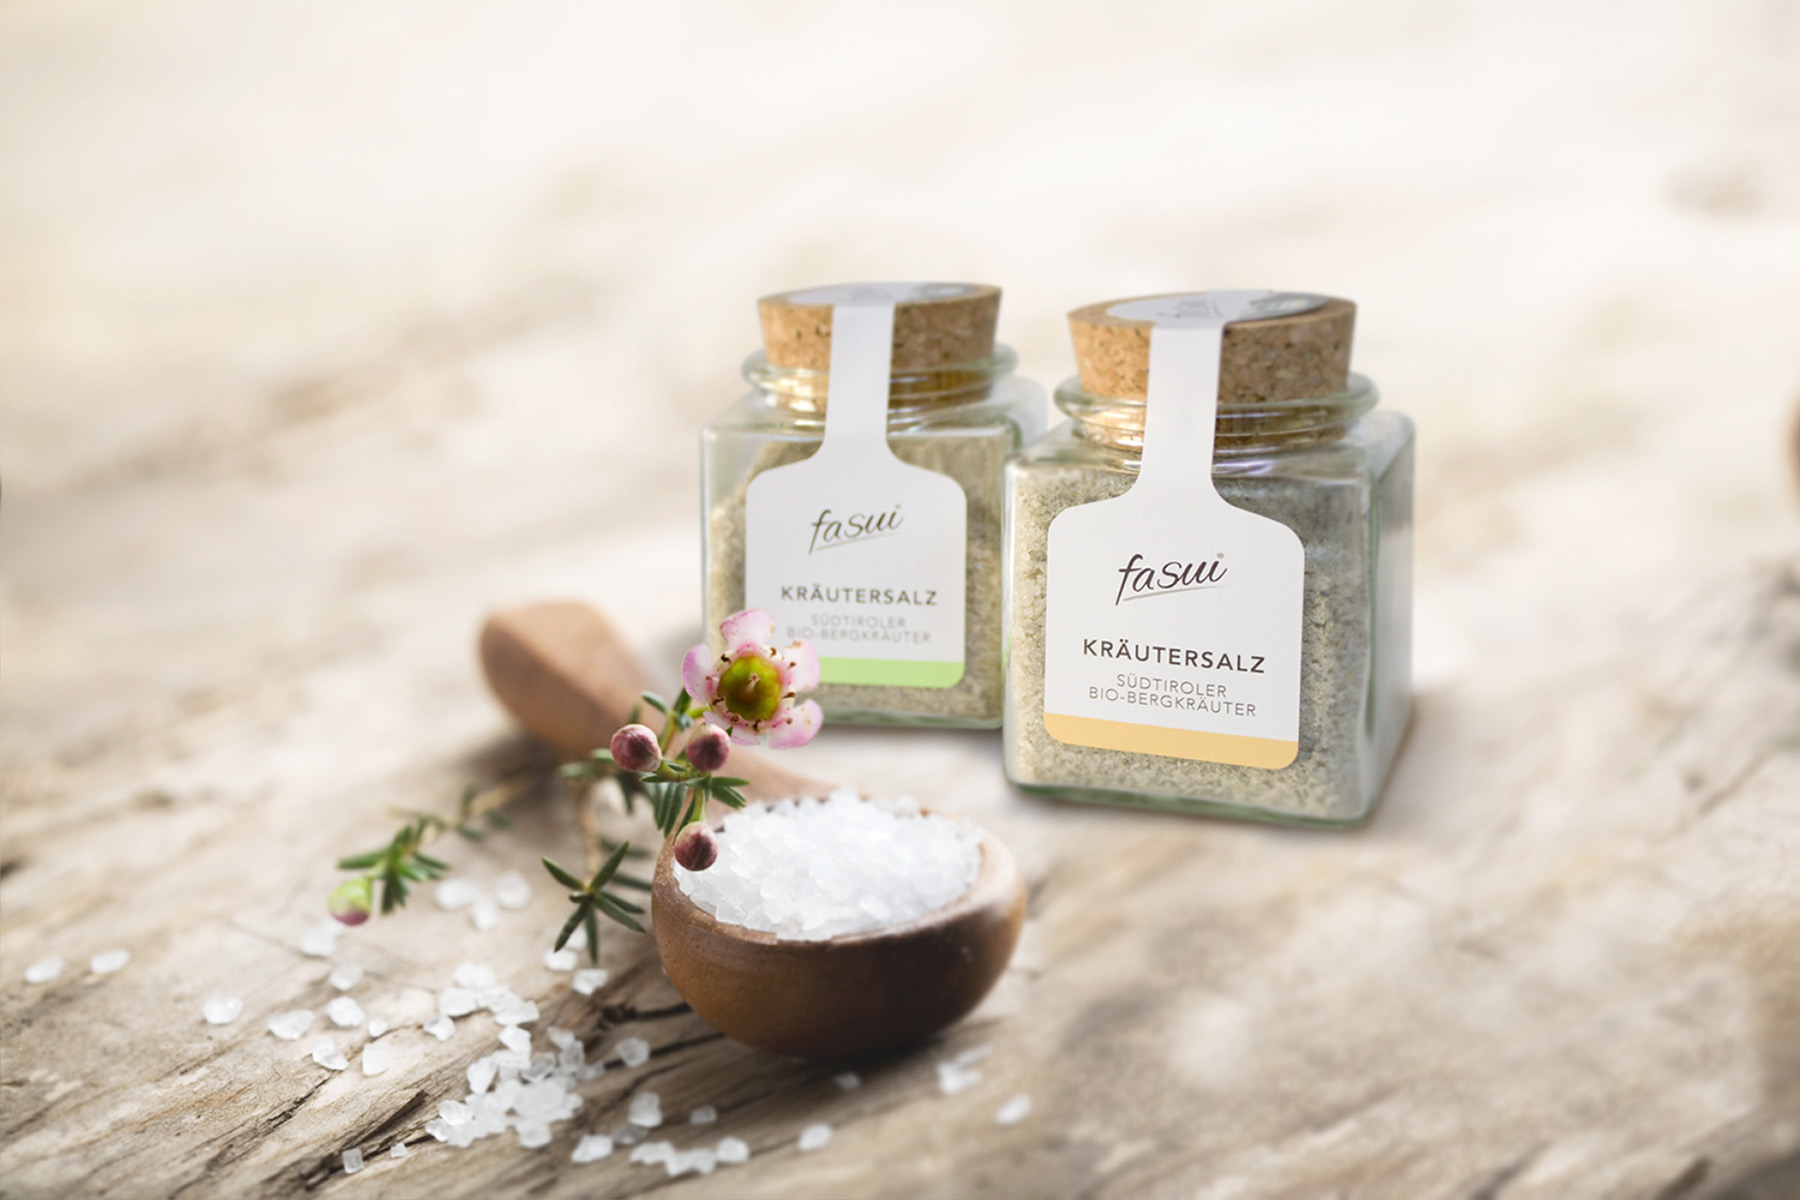 Salt – Sea salt from Sicily and organic mountain herbs from South Tyrol